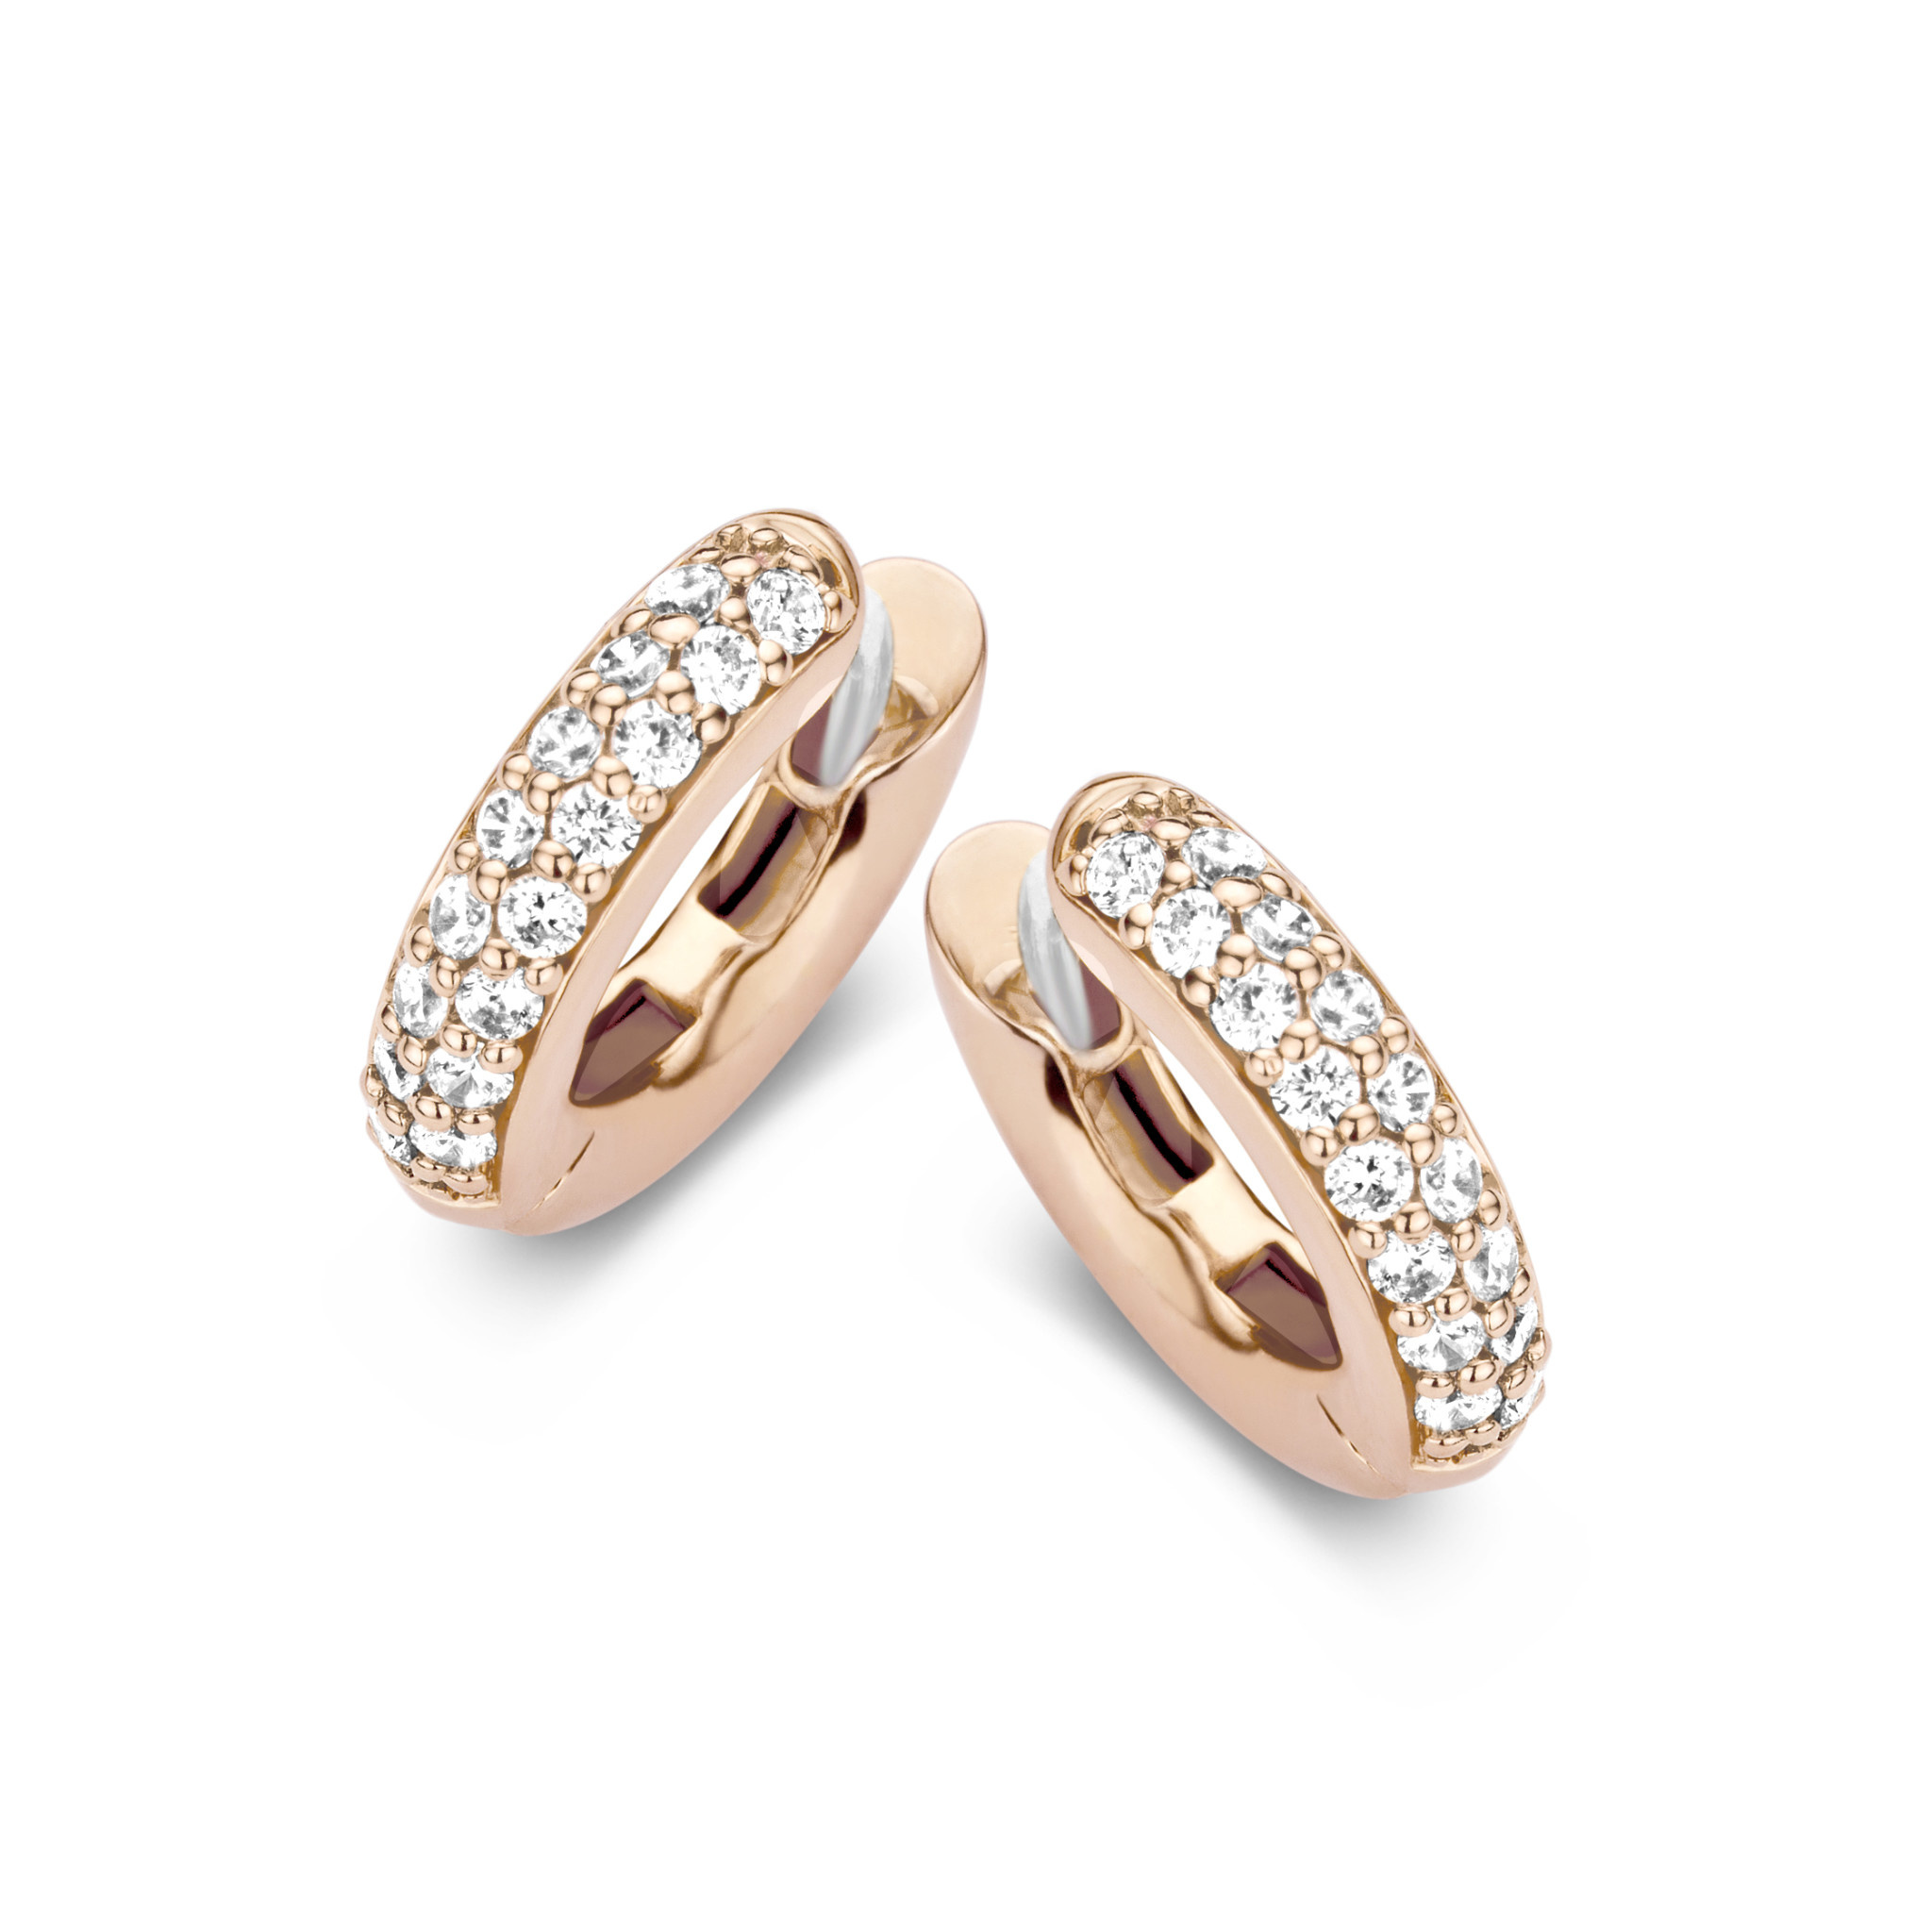 TI SENTO - Milano Earrings 7210ZR-2